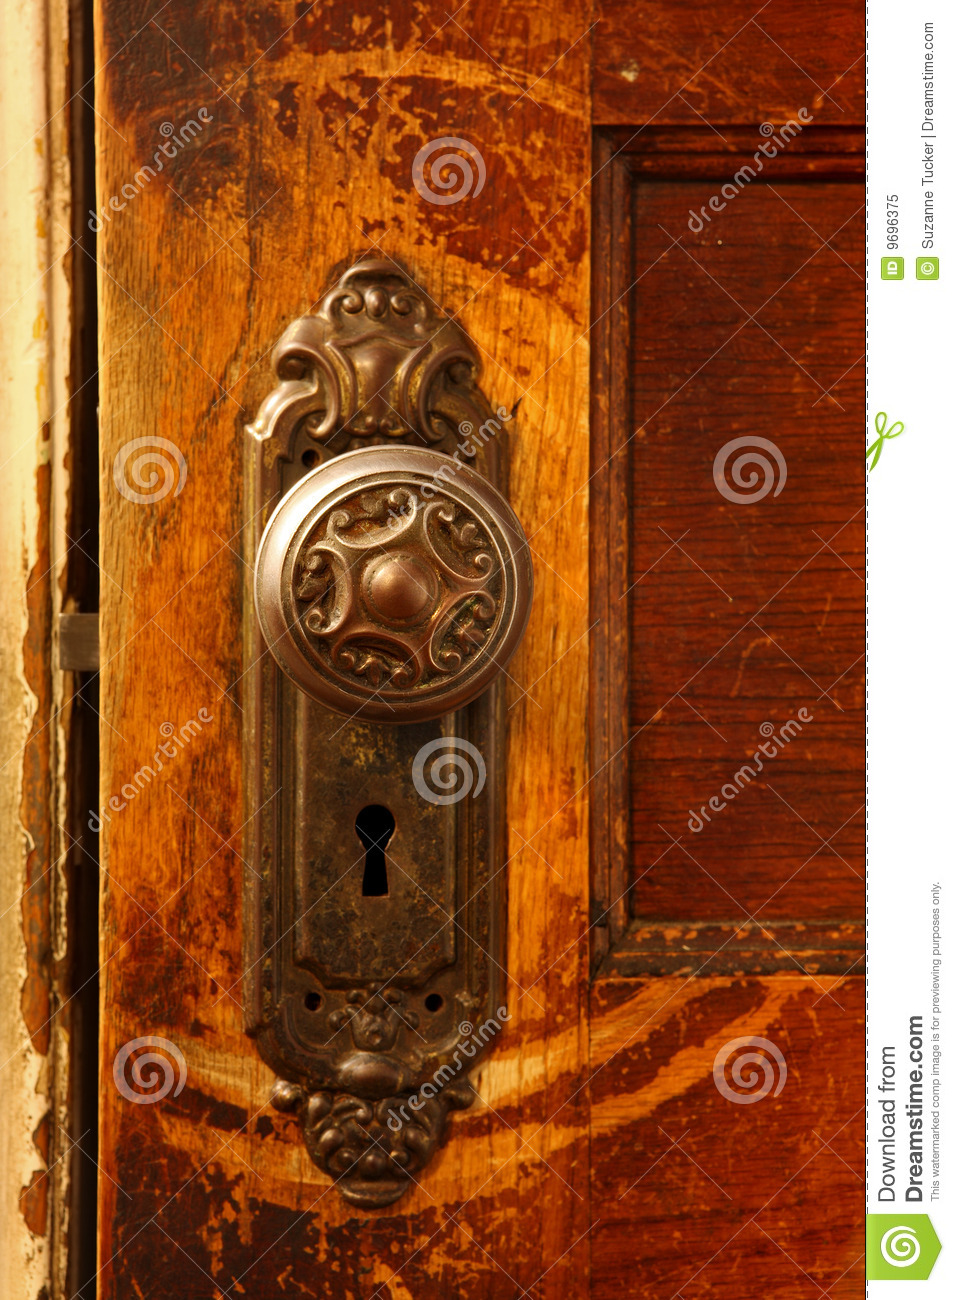 Vintage Door Knob Stock Image Image Of Doorknob Entry